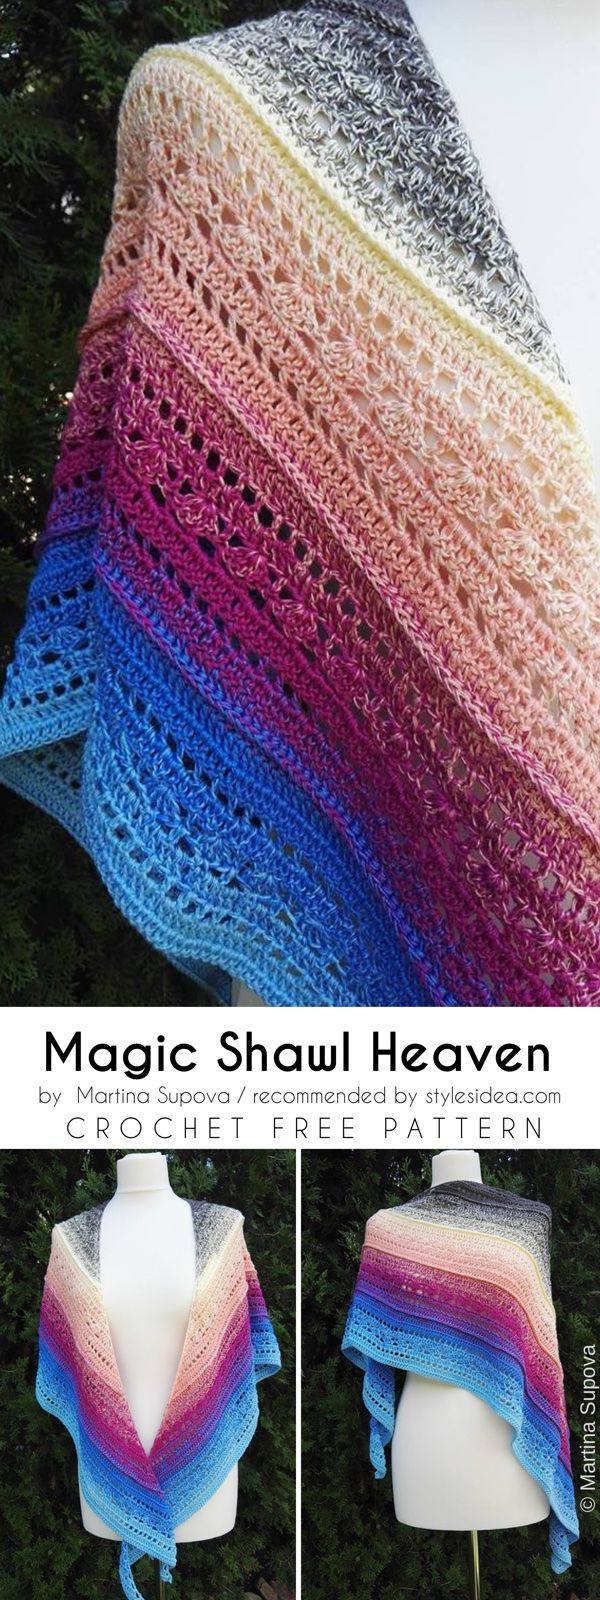 Stunning evening shawls free crochet pattern reheart Choice Image